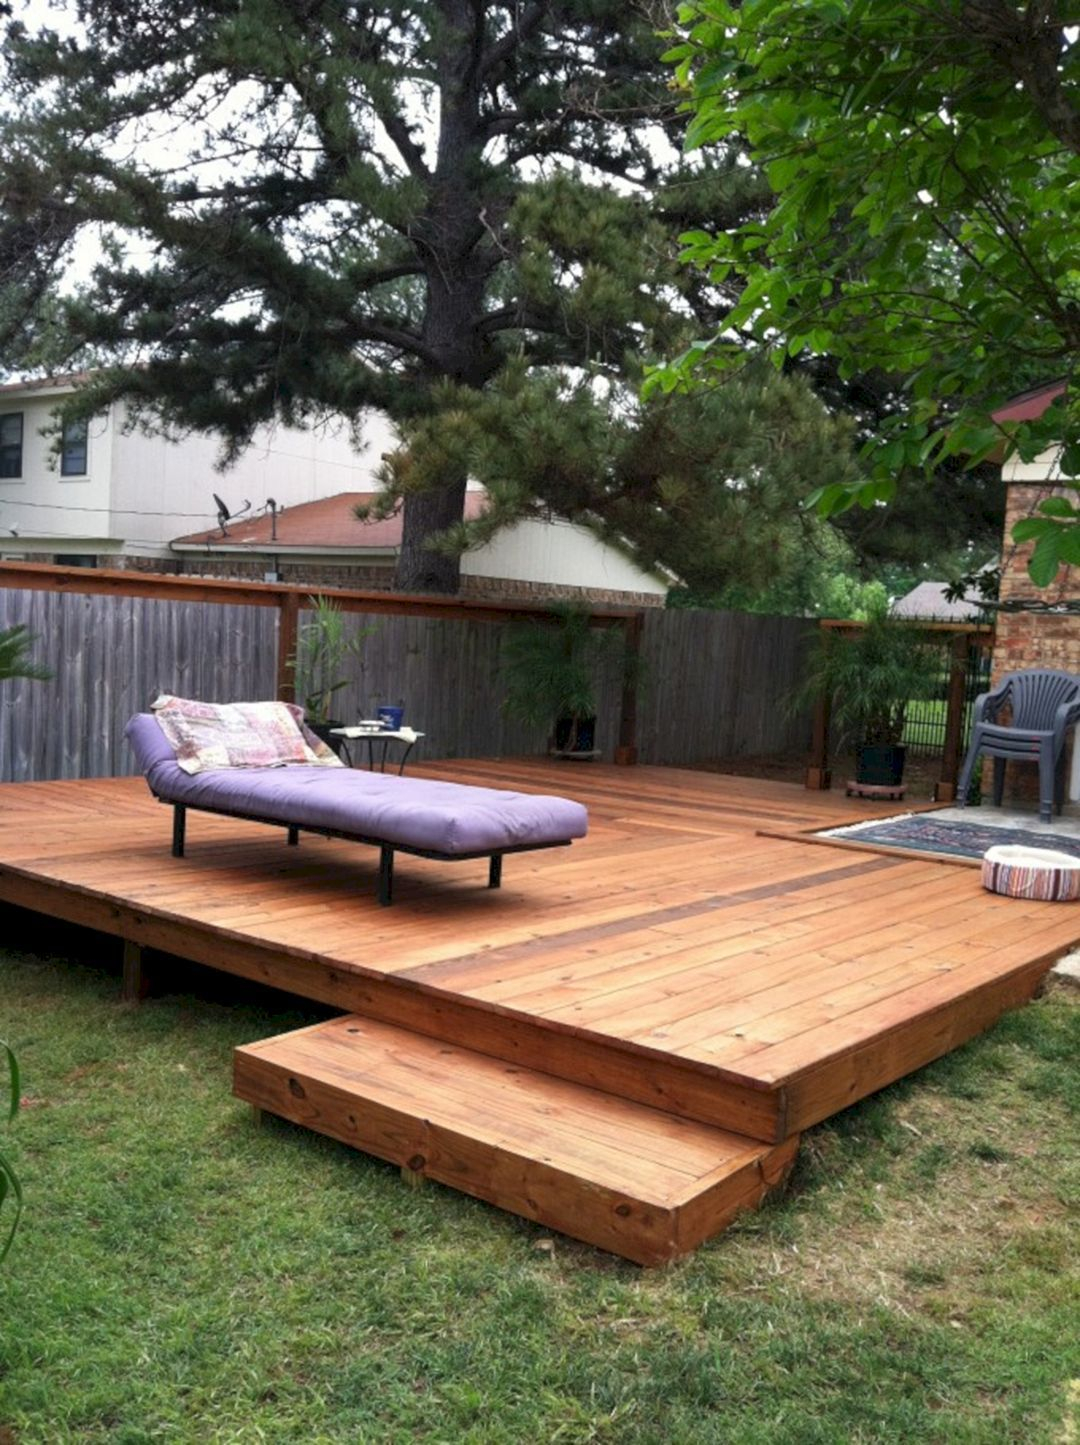 25 Beautiful Backyard Wooden Deck Design Ideas That You Must See It with 15 Smart Ideas How to Upgrade Backyard Wood Deck Ideas